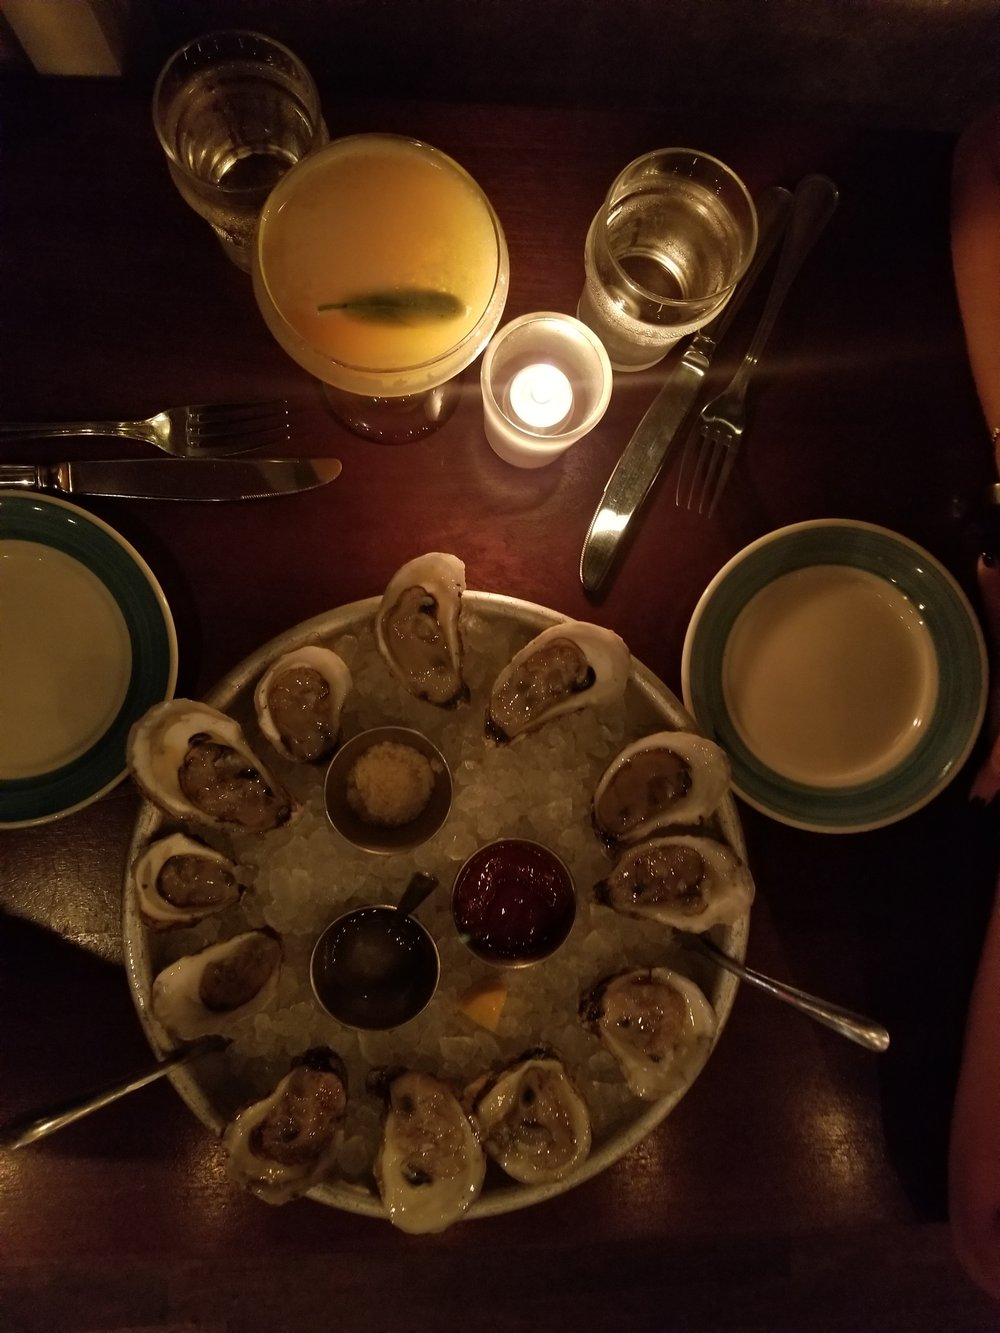 The Darling Oyster  is just that - darling. The food was excellent. Once again, we started with a dozen delicious oysters. We then split the house smoked salmon dip - so yum. For our mains, Dan opted for the lobster & king crab roll and I went for seared diver scallops.